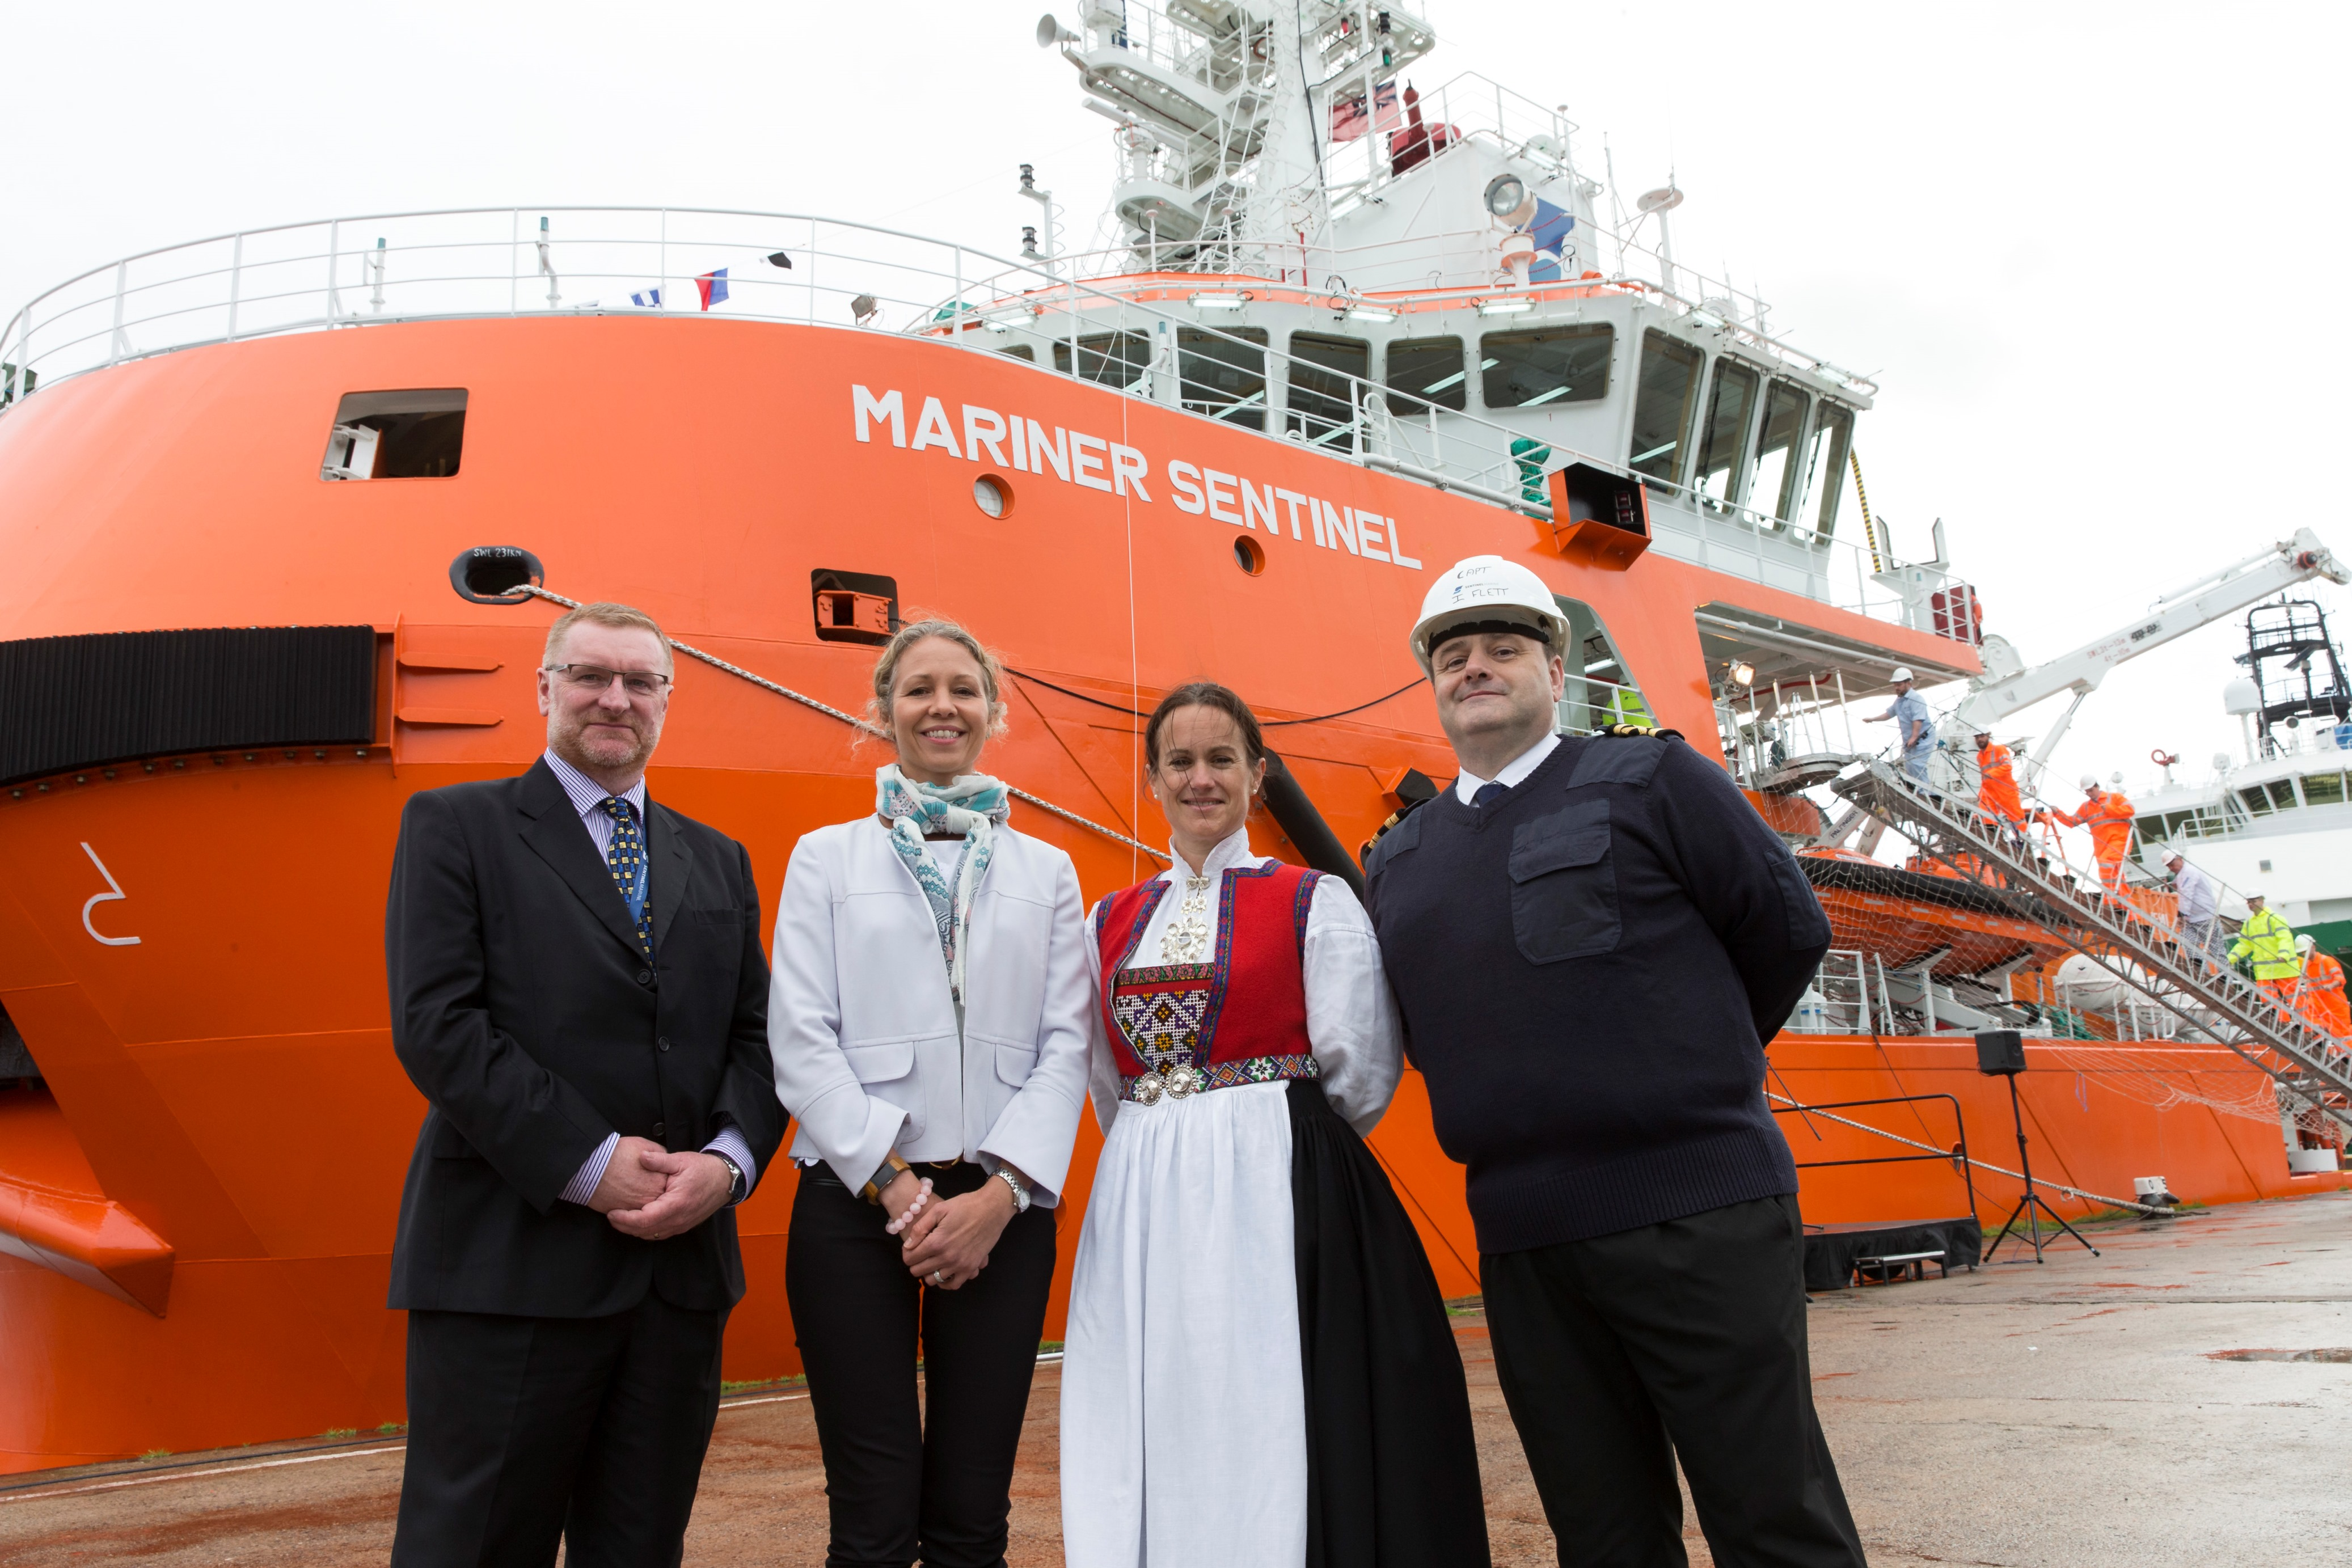 Christening of Mariner Sentinel takes place in Aberdeen ahead of Statoil deployment